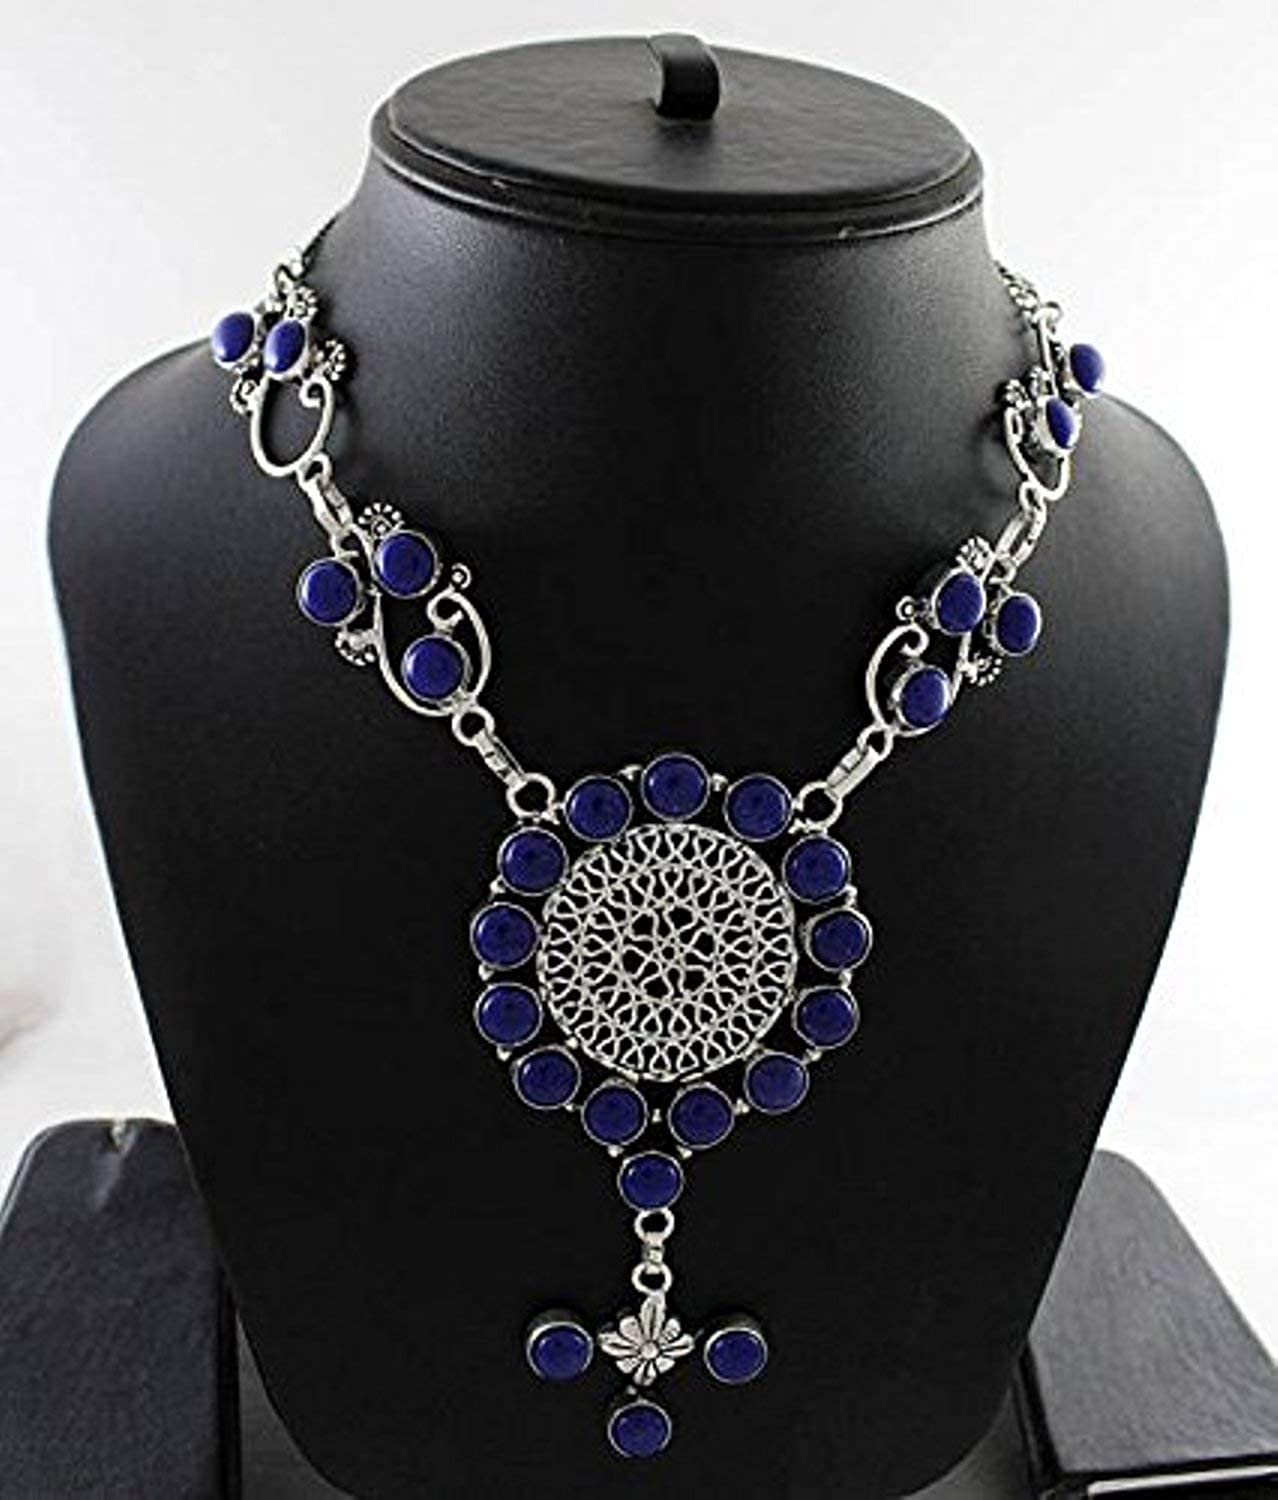 Royal Blue Chalcedony Necklace Silver Overlay Fashion Jewellery Designer Bridal Jewelry Gift 19 Inch